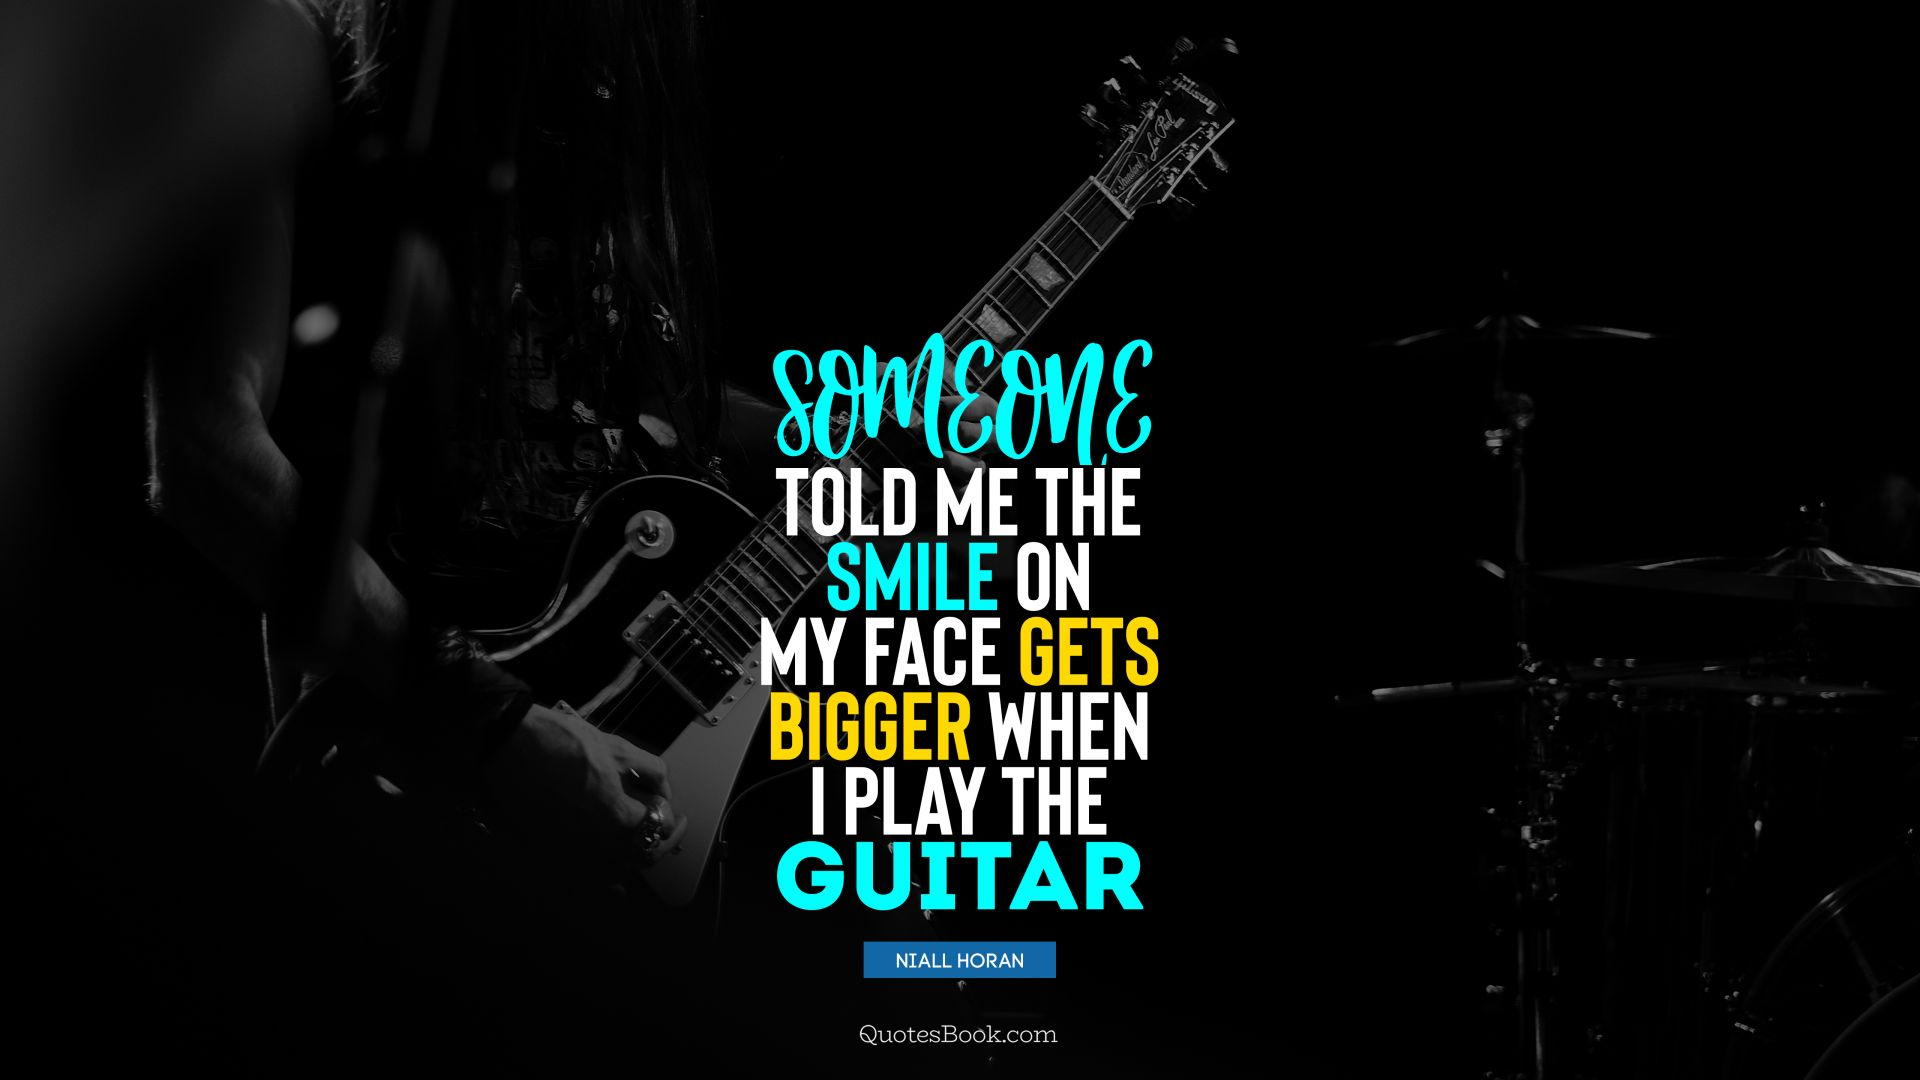 Someone told me the smile on my face gets bigger when I play the guitar. - Quote by Niall Horan